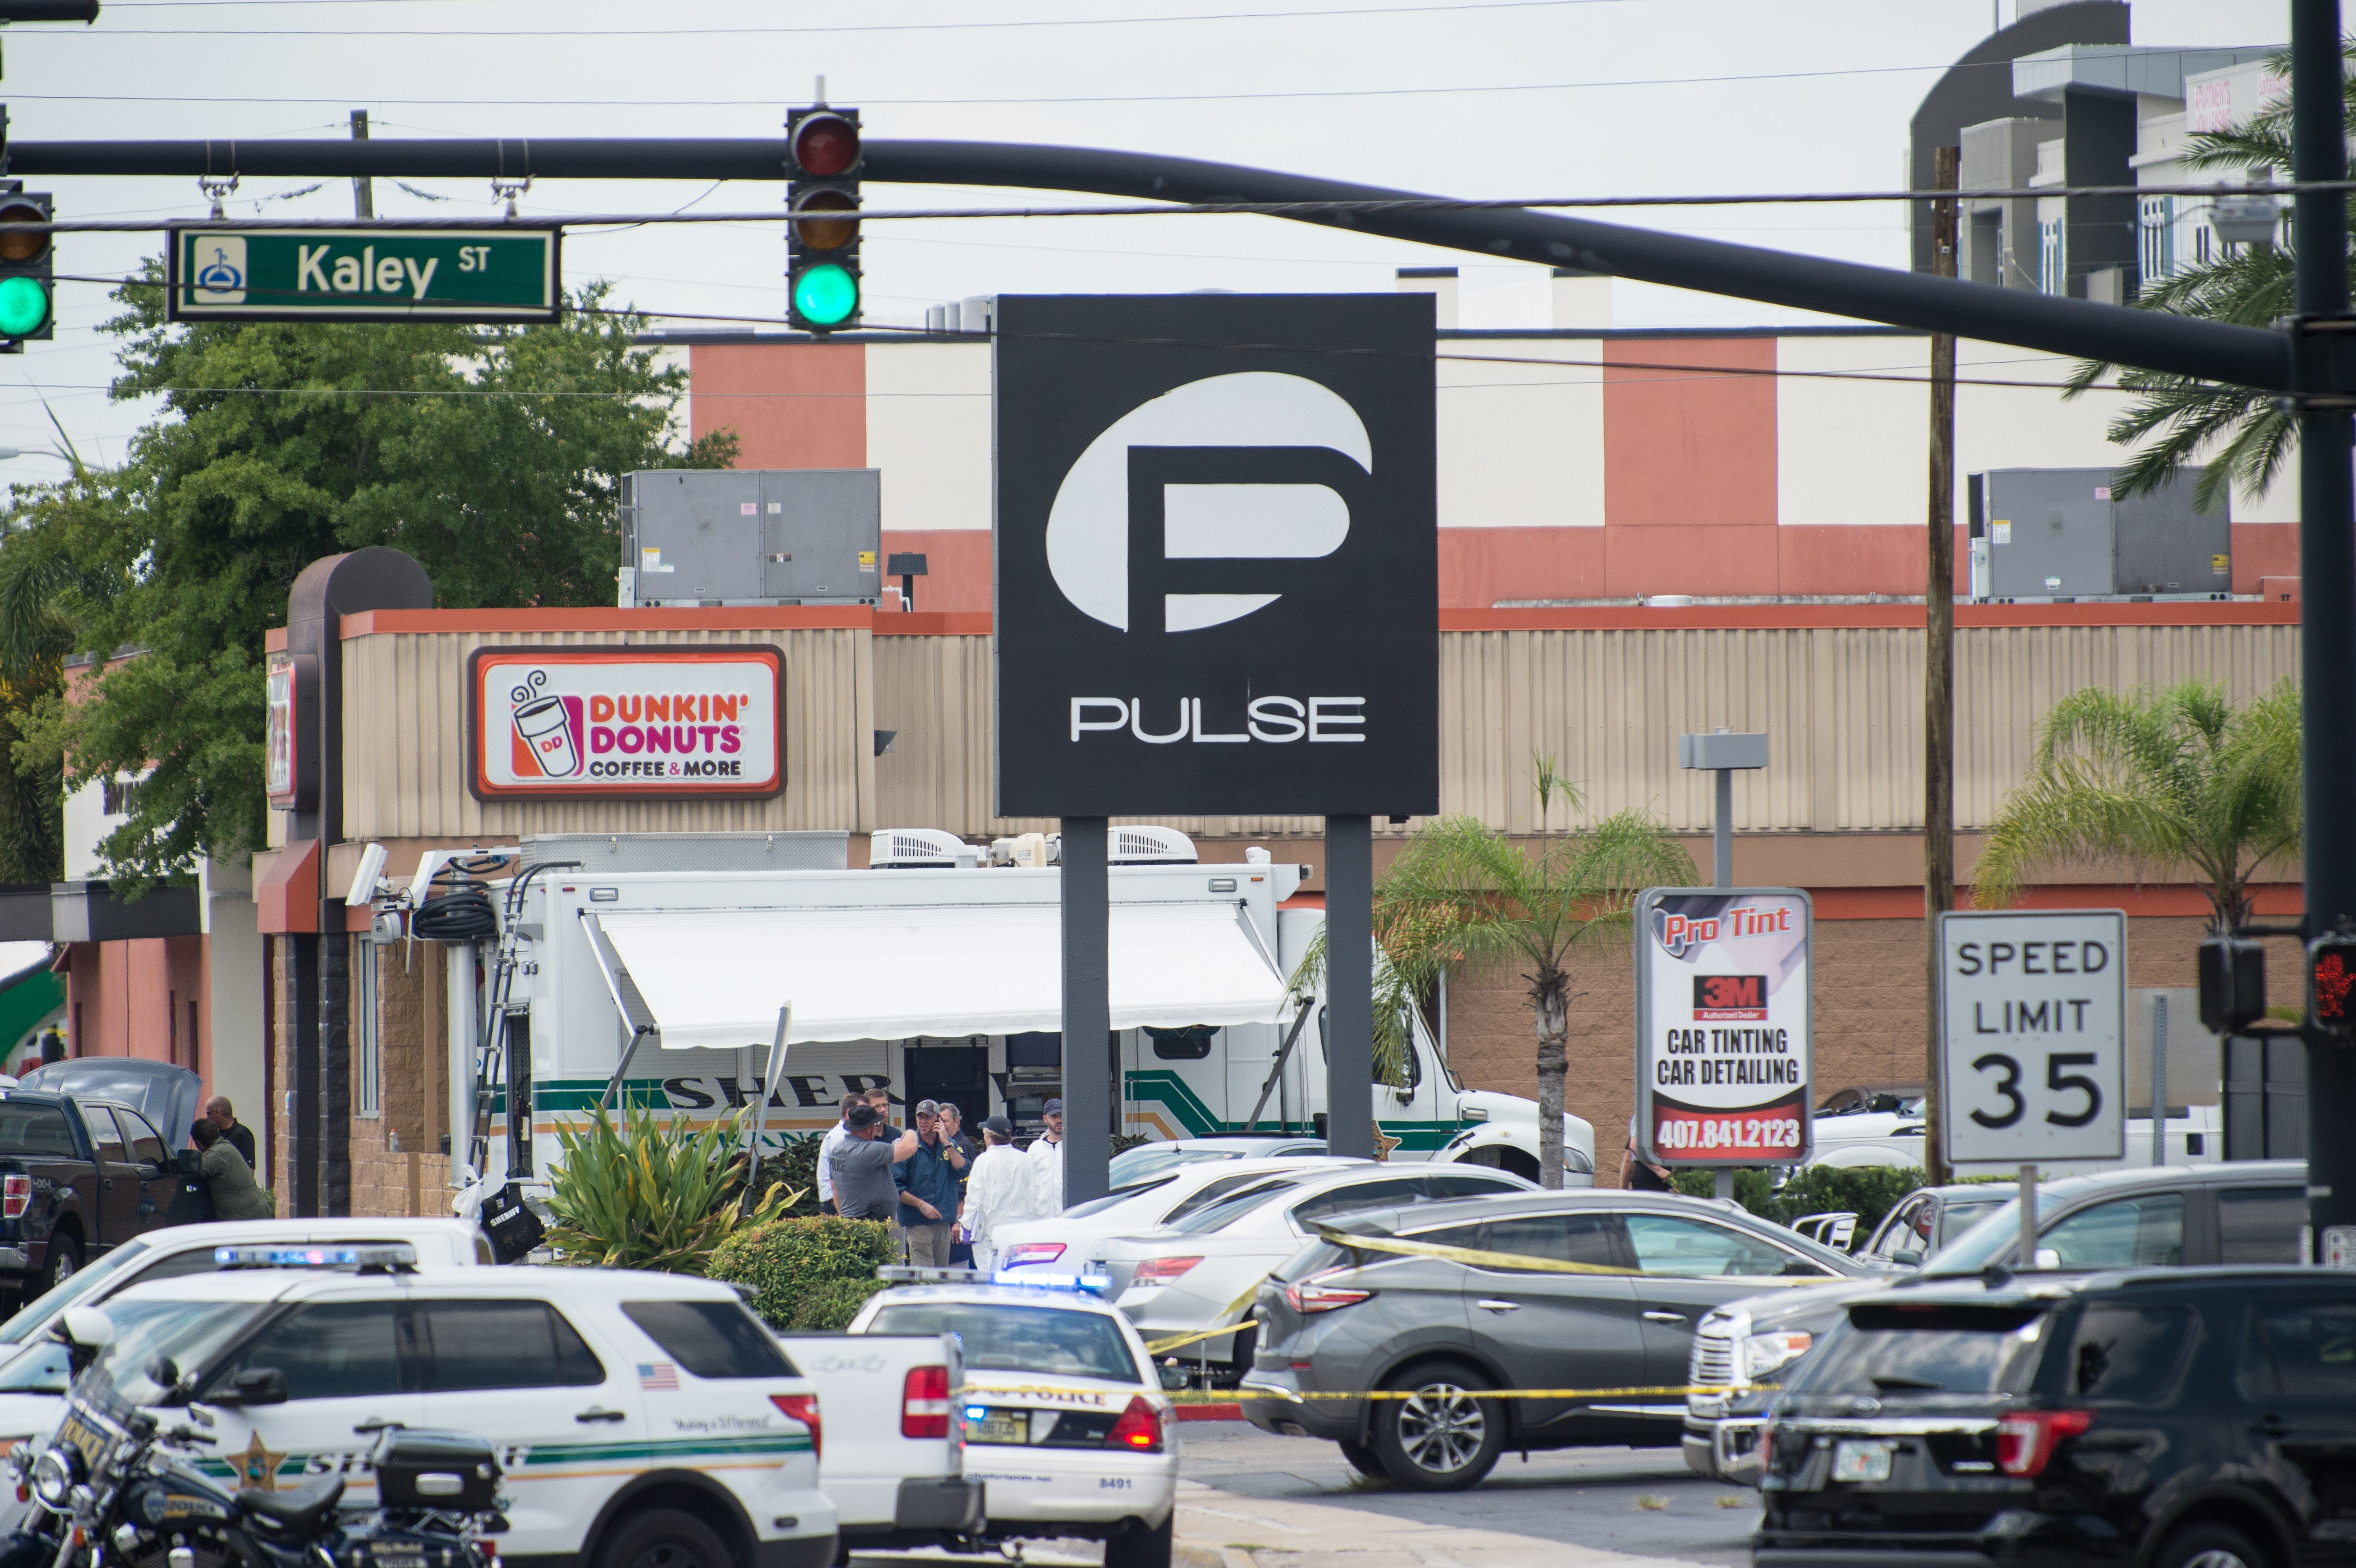 Remembering Pulse: Recording Conversations About the Pulse Nightclub Shooting